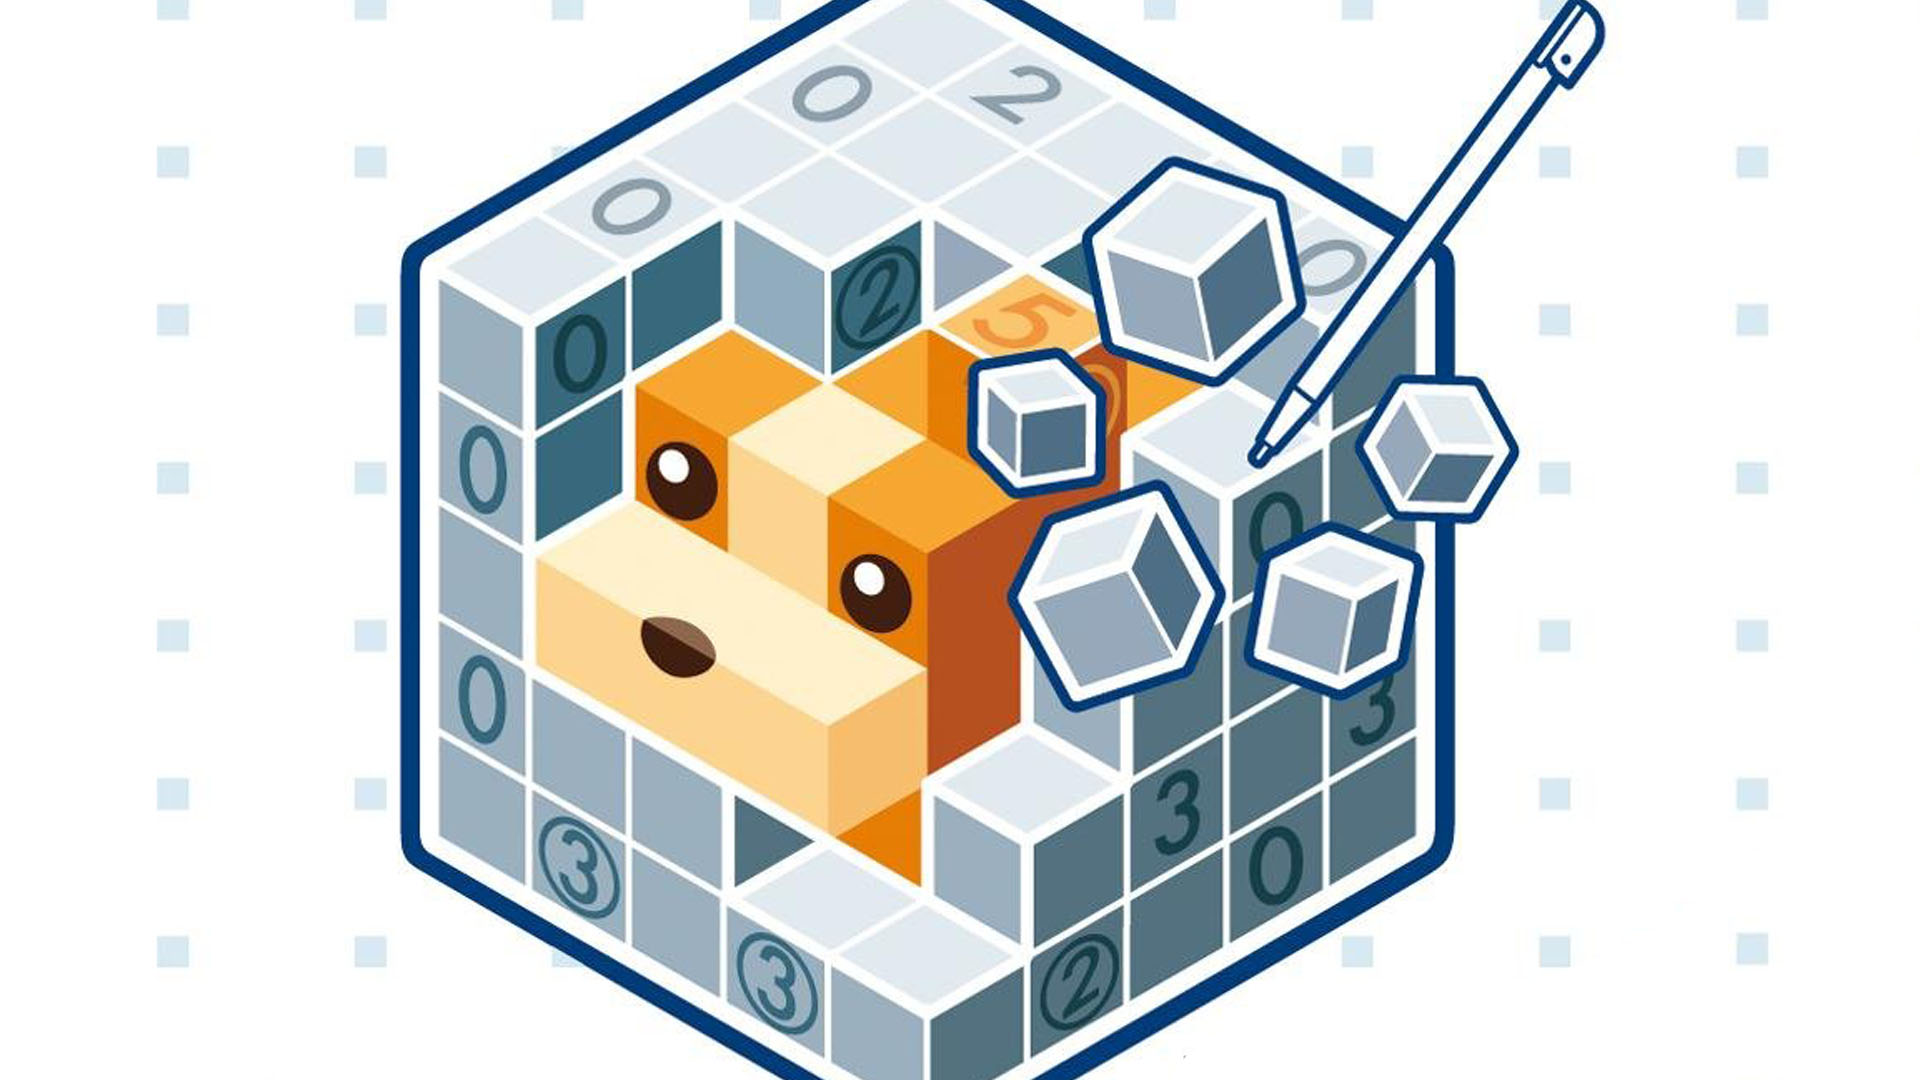 Picross 3d Puzzles On Wii U Virtual Consoles Tomorrow Nintendo Wire Diagram